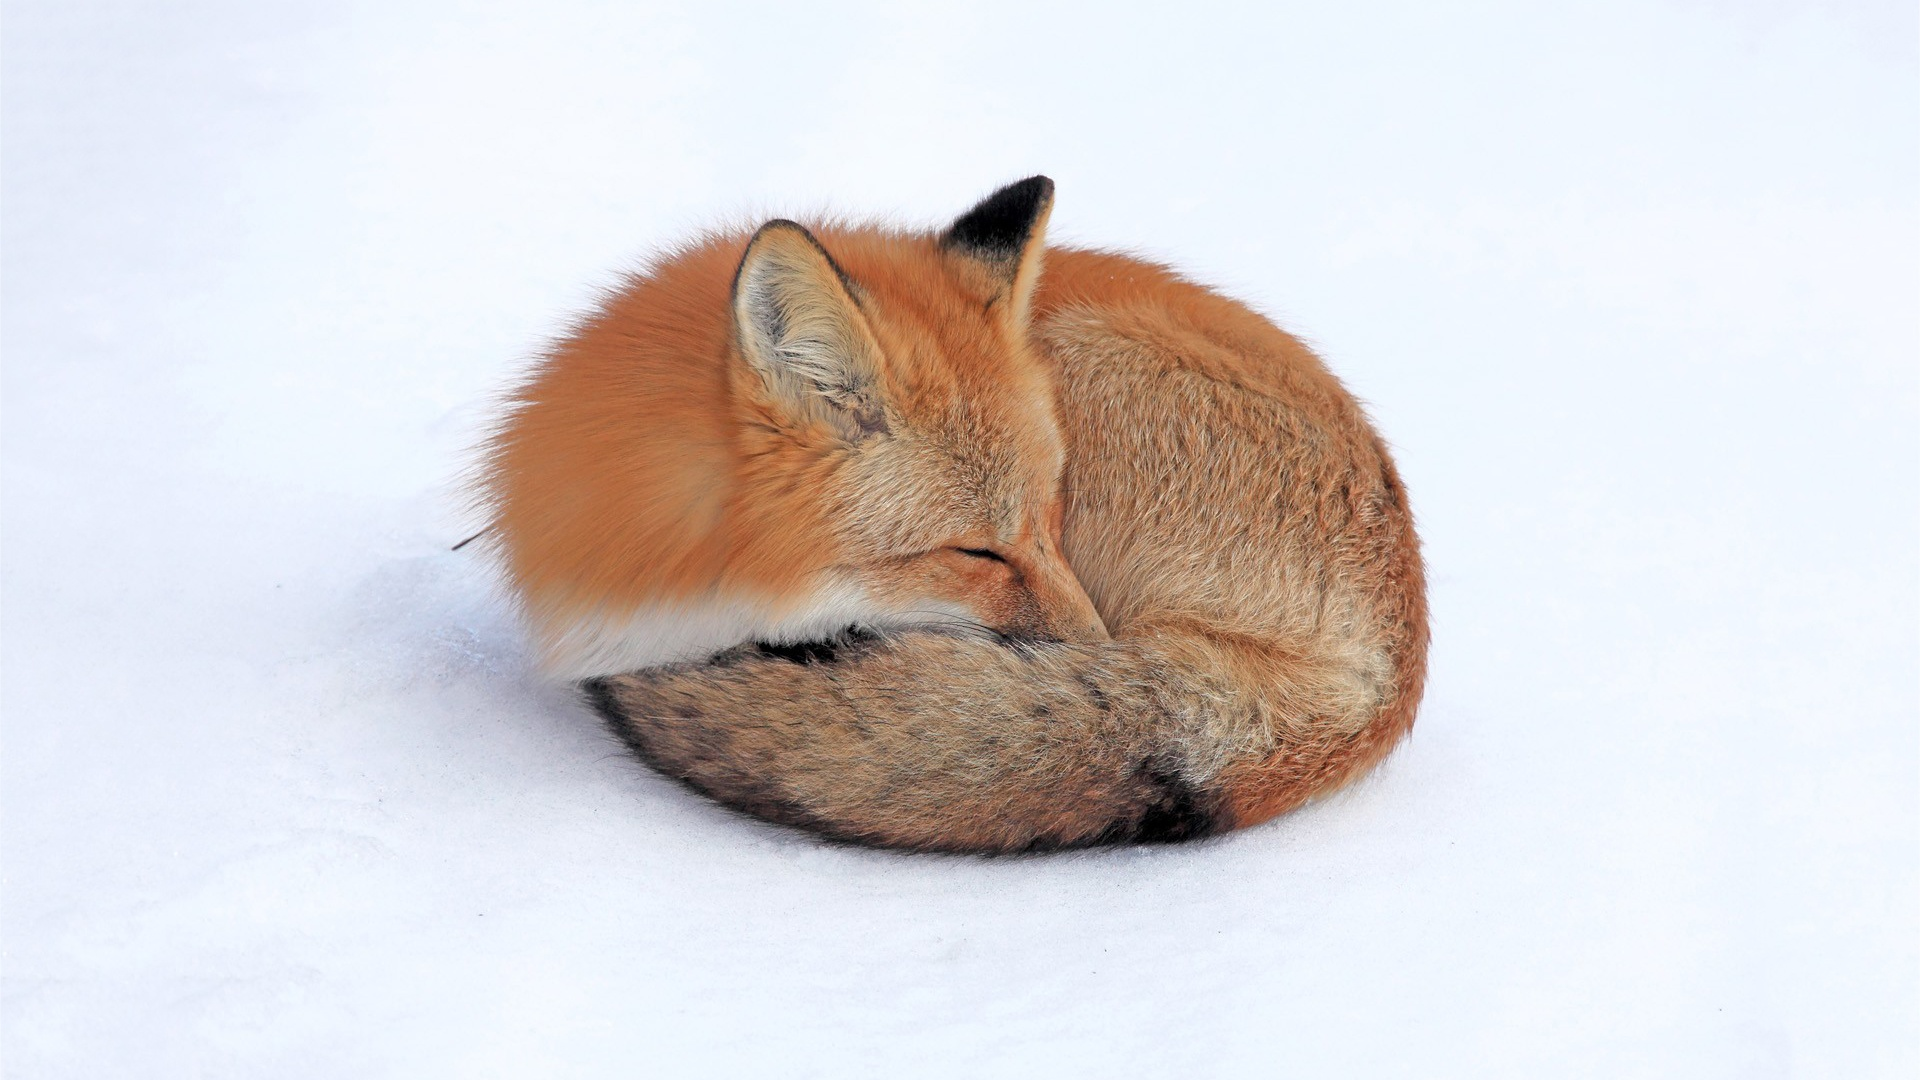 red-fox-sleeping-1920x1080-1920%C3%971080-wallpaper-wp36010091